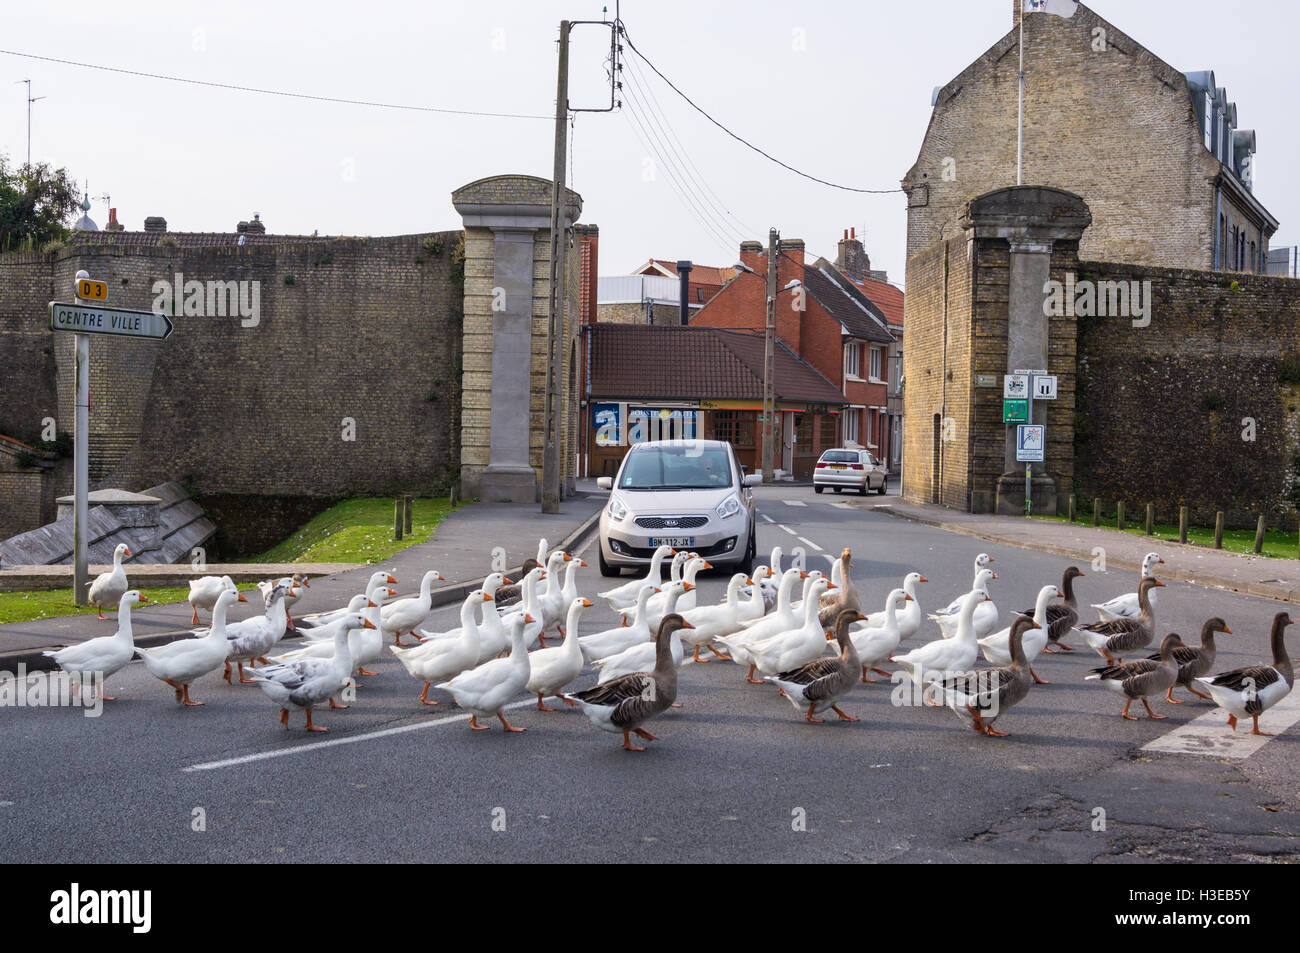 a-flock-of-domestic-and-toulouse-geese-crossing-the-road-and-stopping-H3EB5Y.jpg